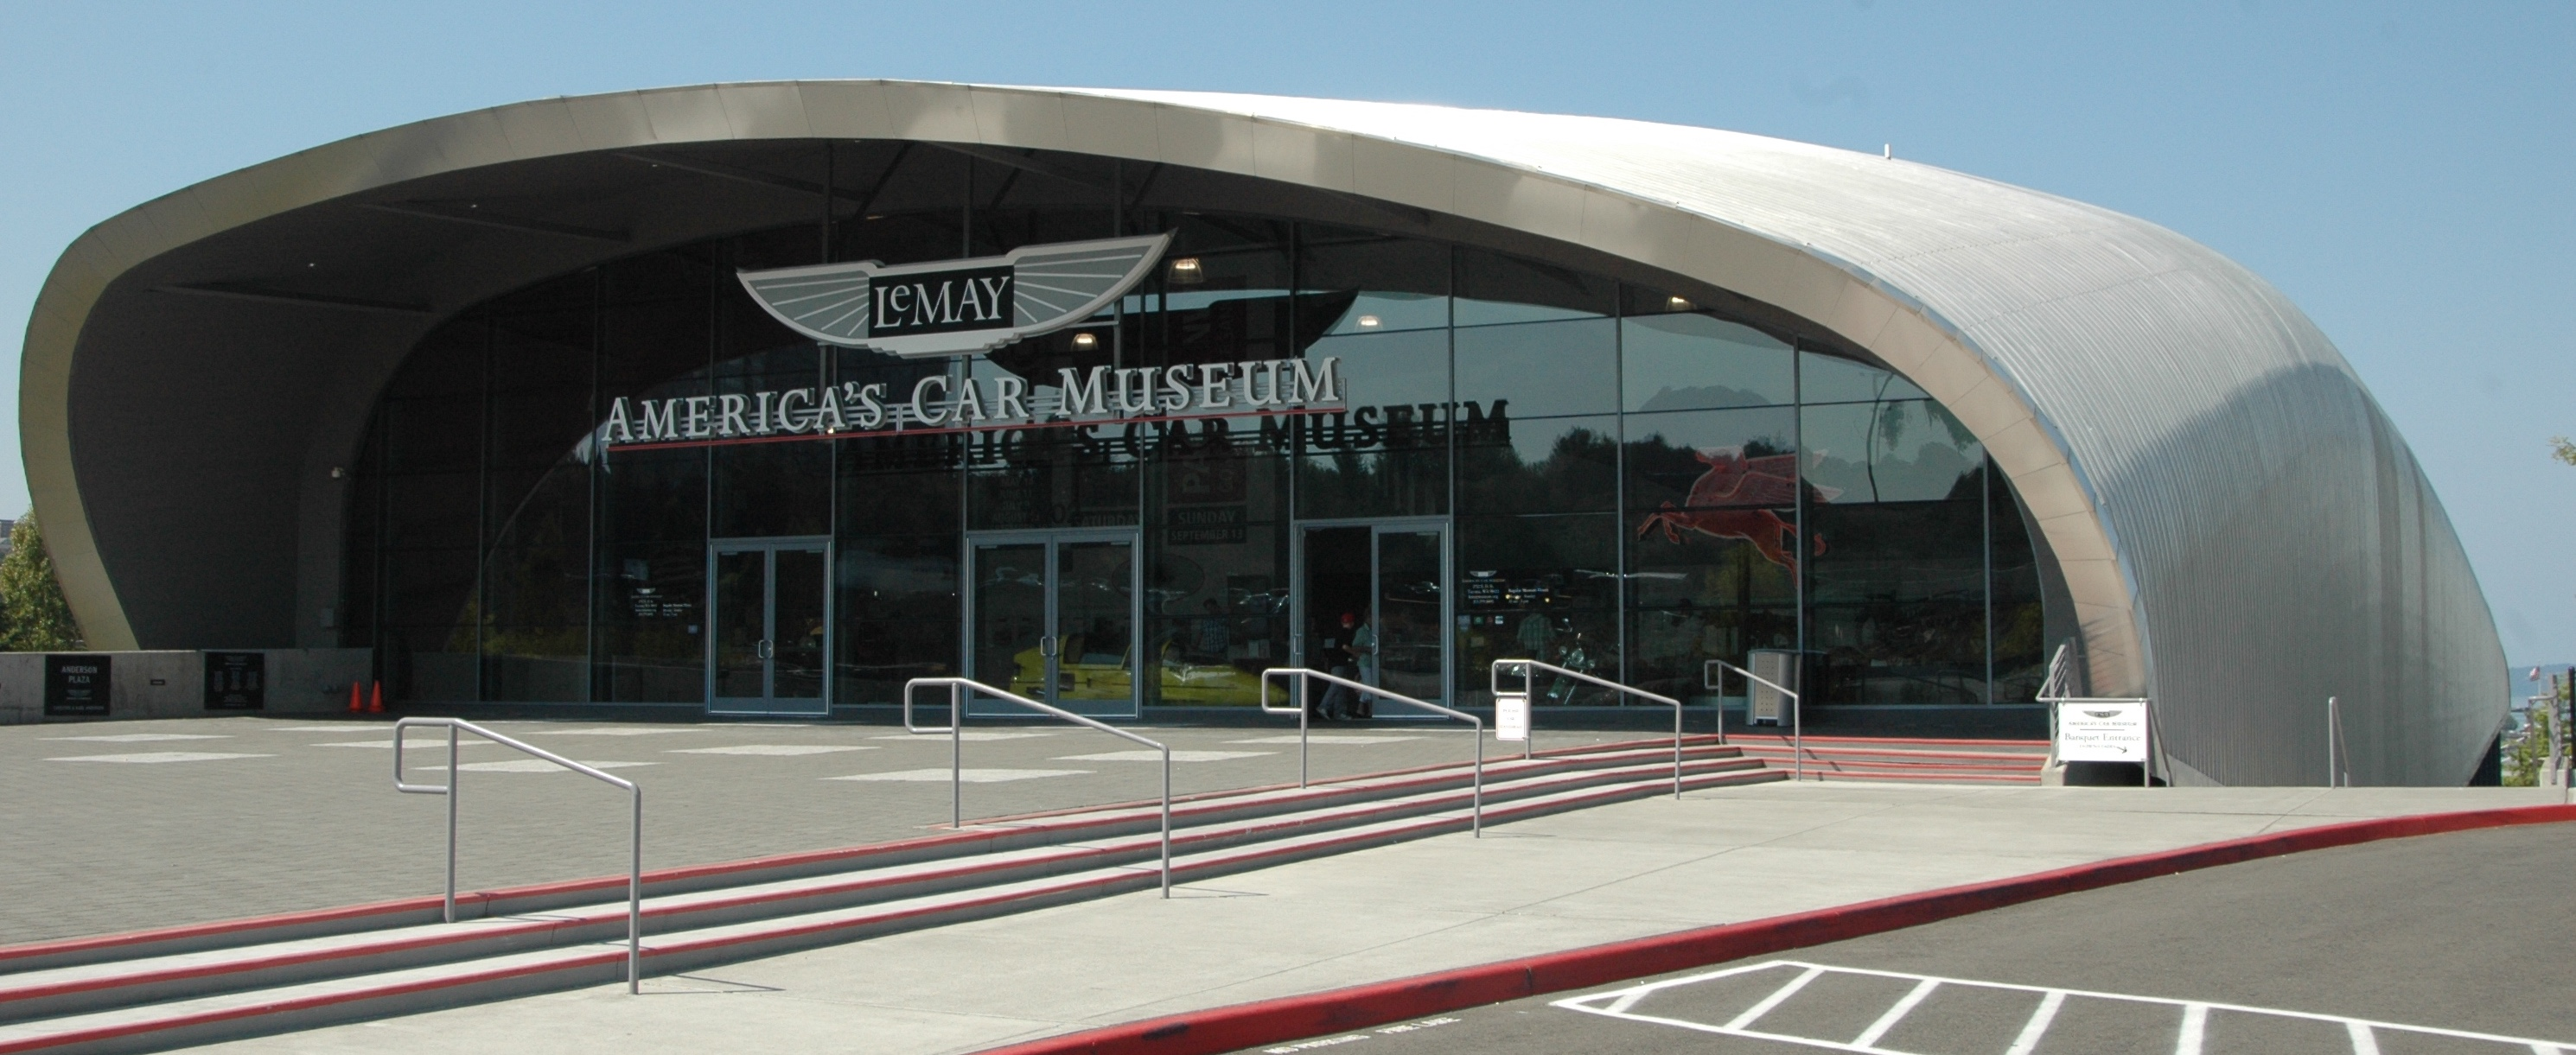 LeMay museum itself is an architectural wonder | Photos by Steve Purdy